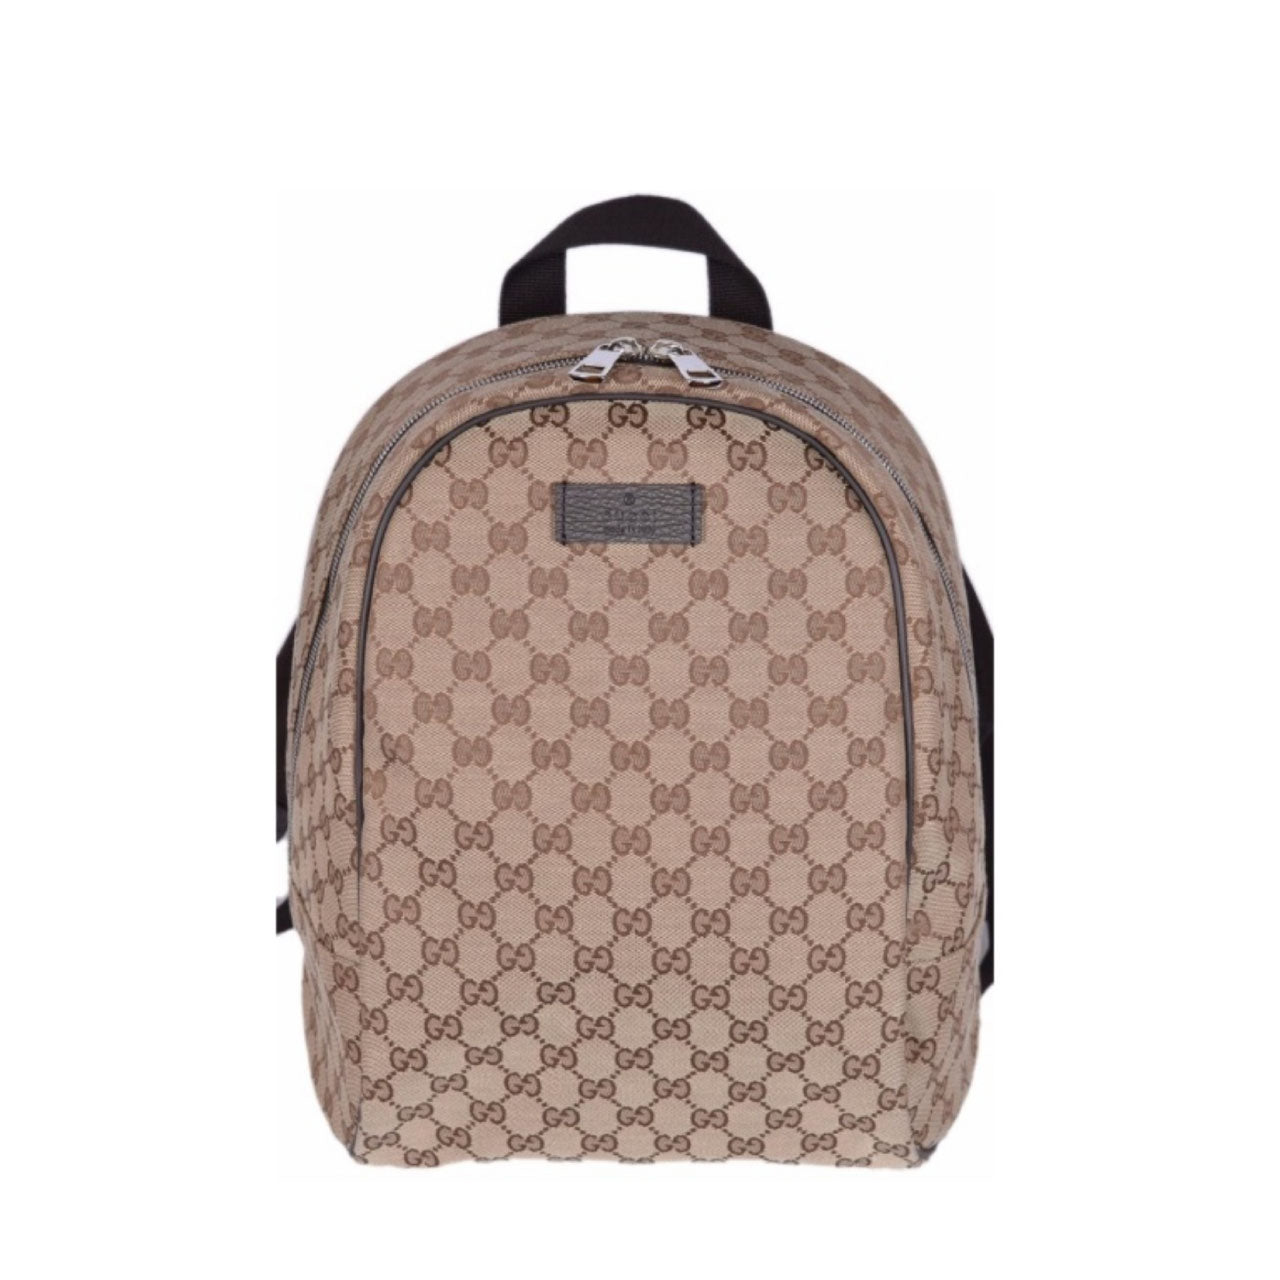 5e891eb4ffe12 Gucci Beige Canvas GG Guccissima Backpack Rucksack Travel Bag – Buy2bee  Luxury